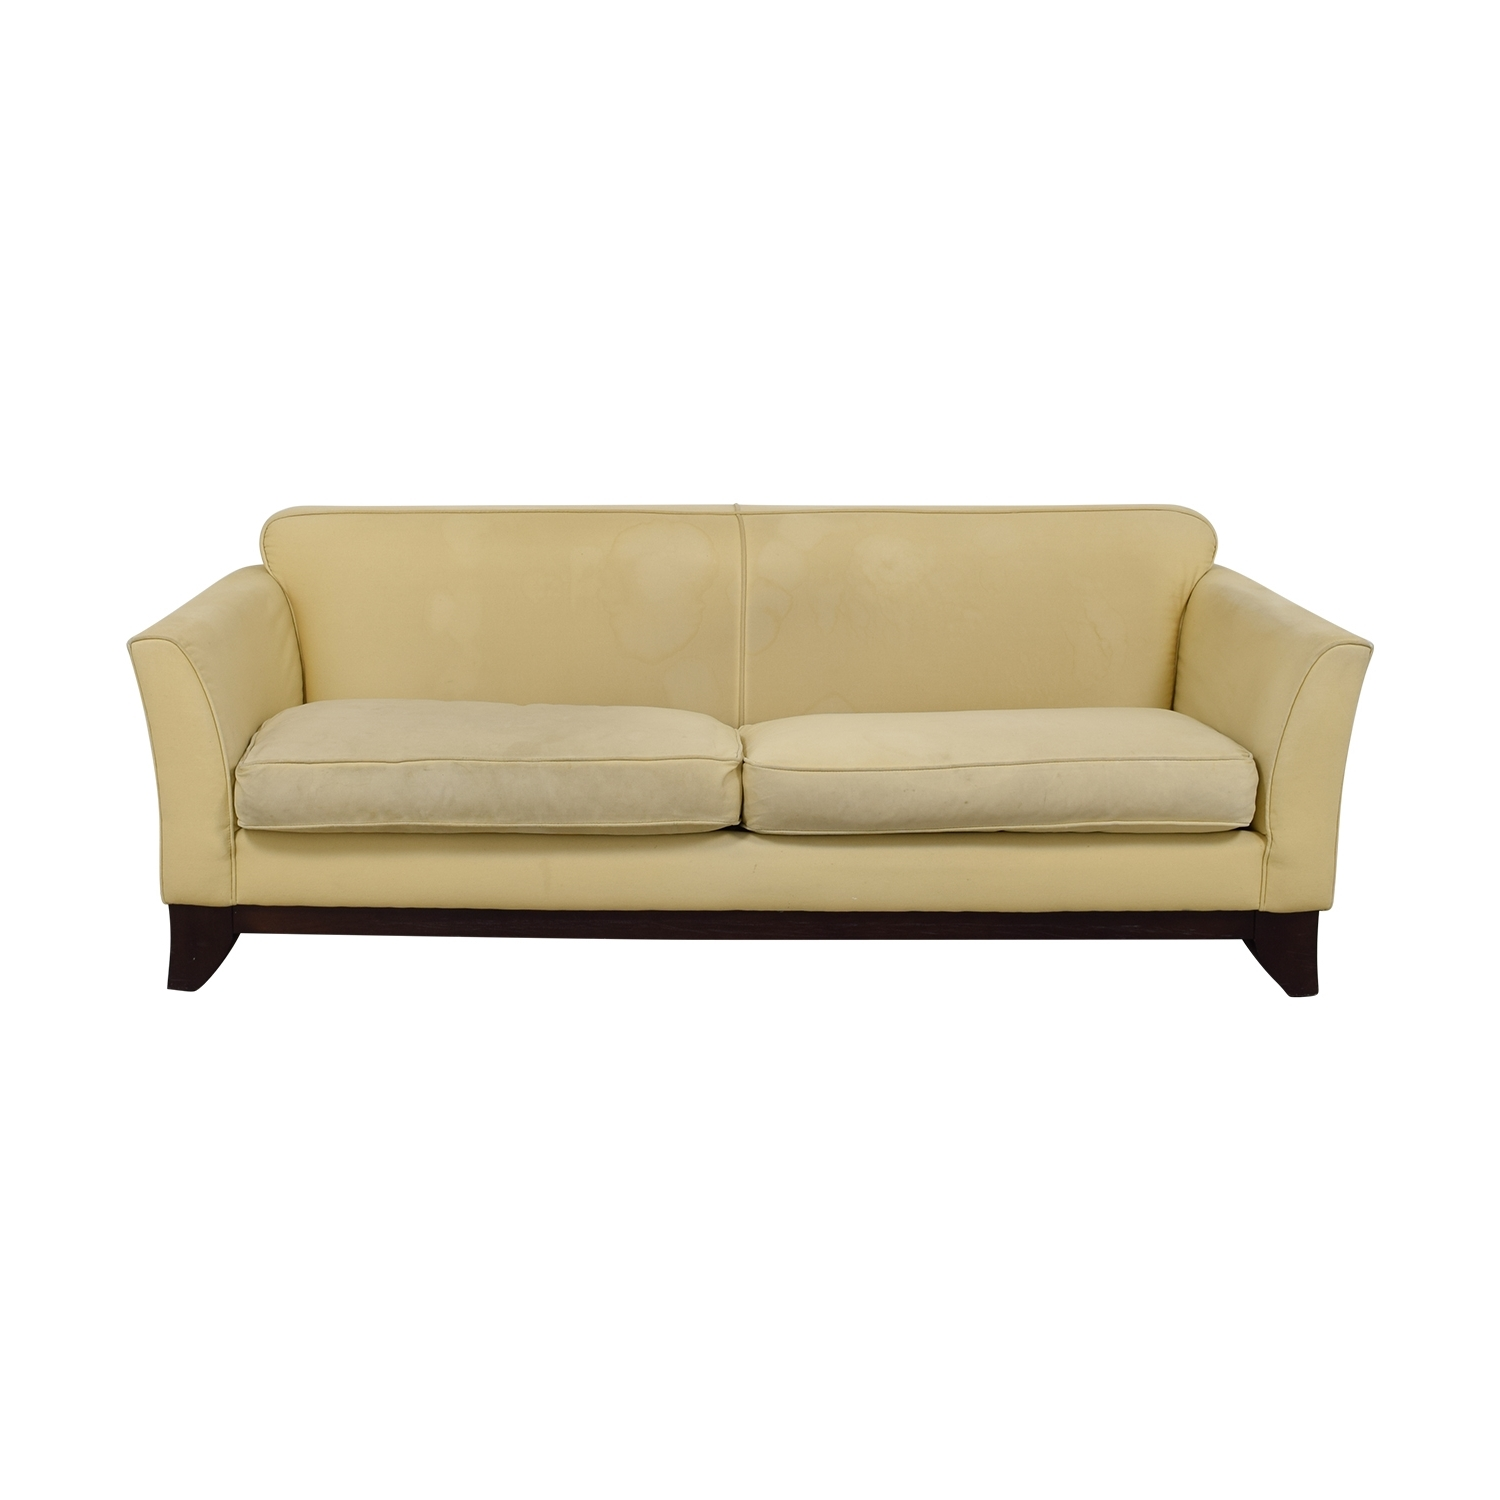 Sofas: Used Sofas For Sale Within Fashionable Yellow Chintz Sofas (View 14 of 15)